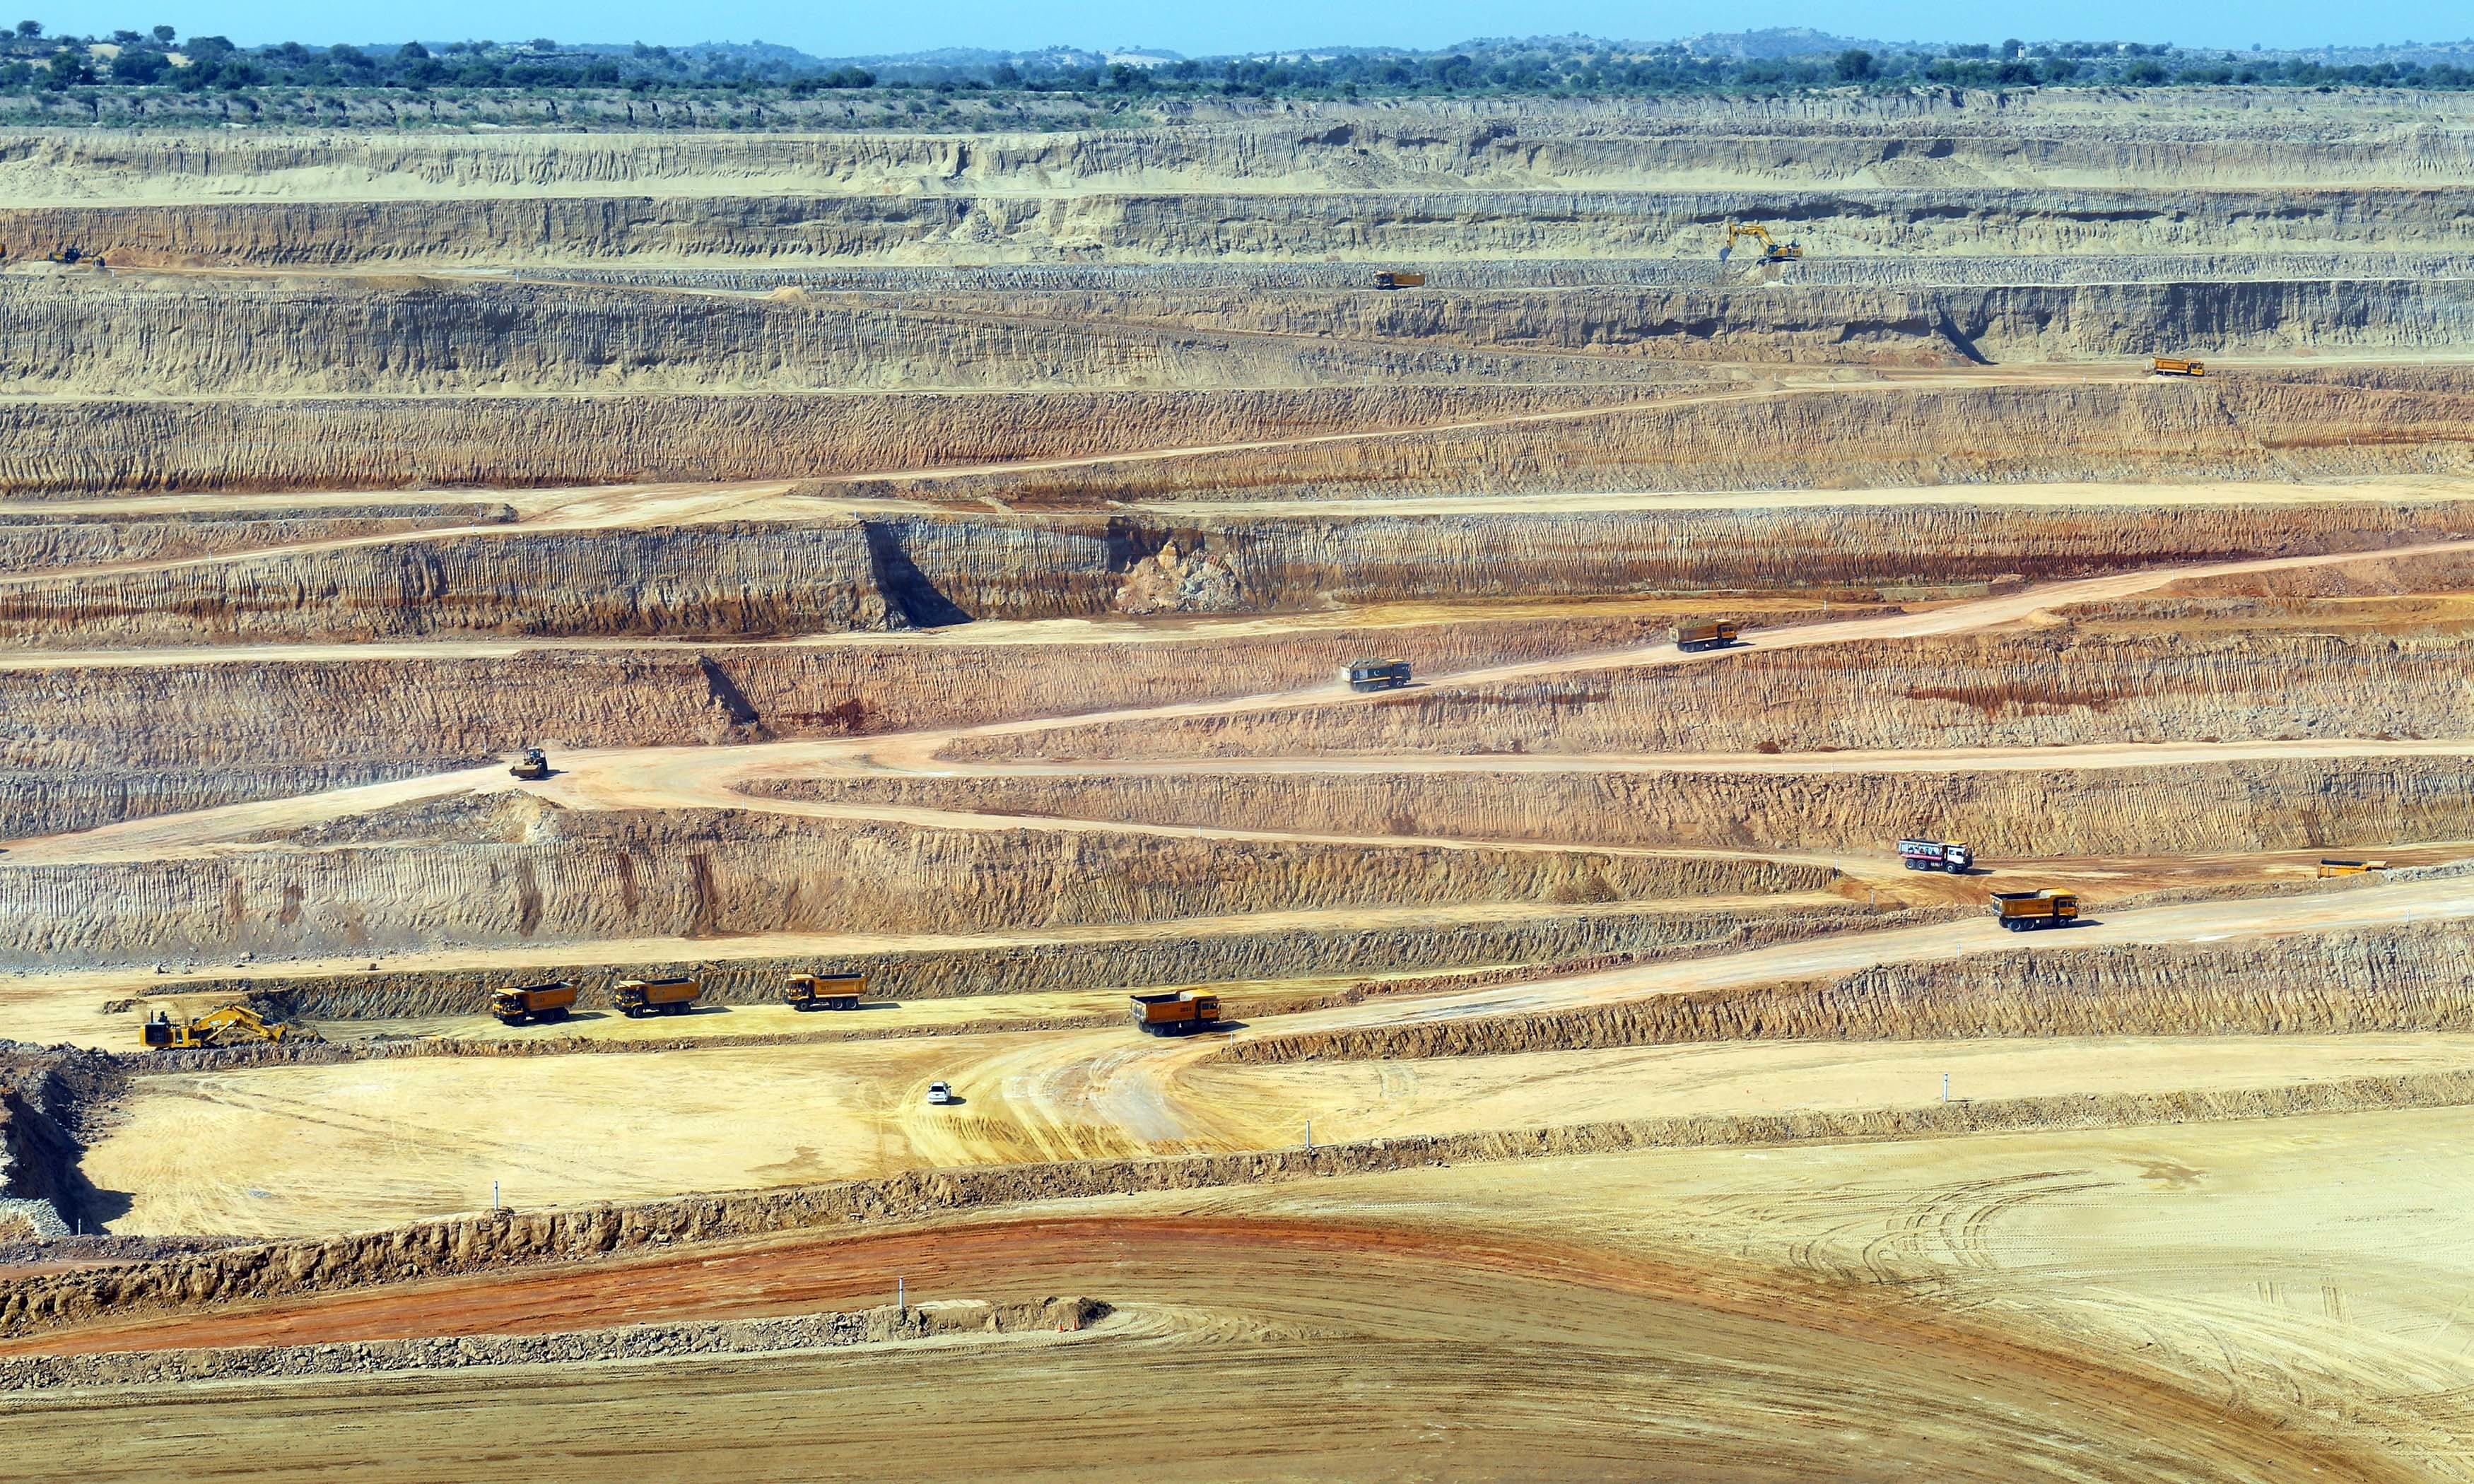 The company would be mining 7.6 million tonnes per annum of coal.